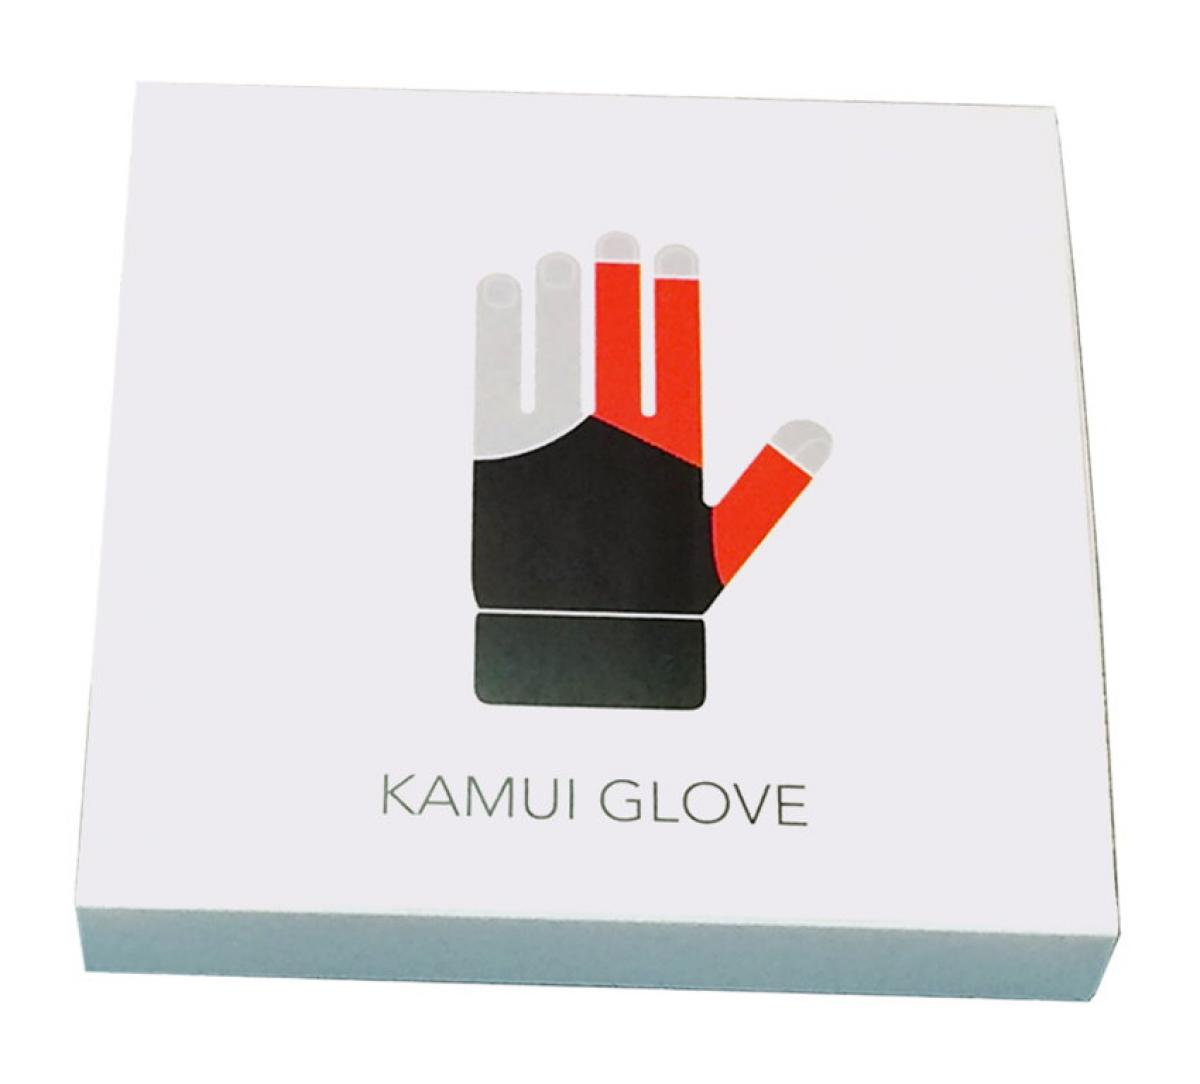 Kamui Glove (Red, box)